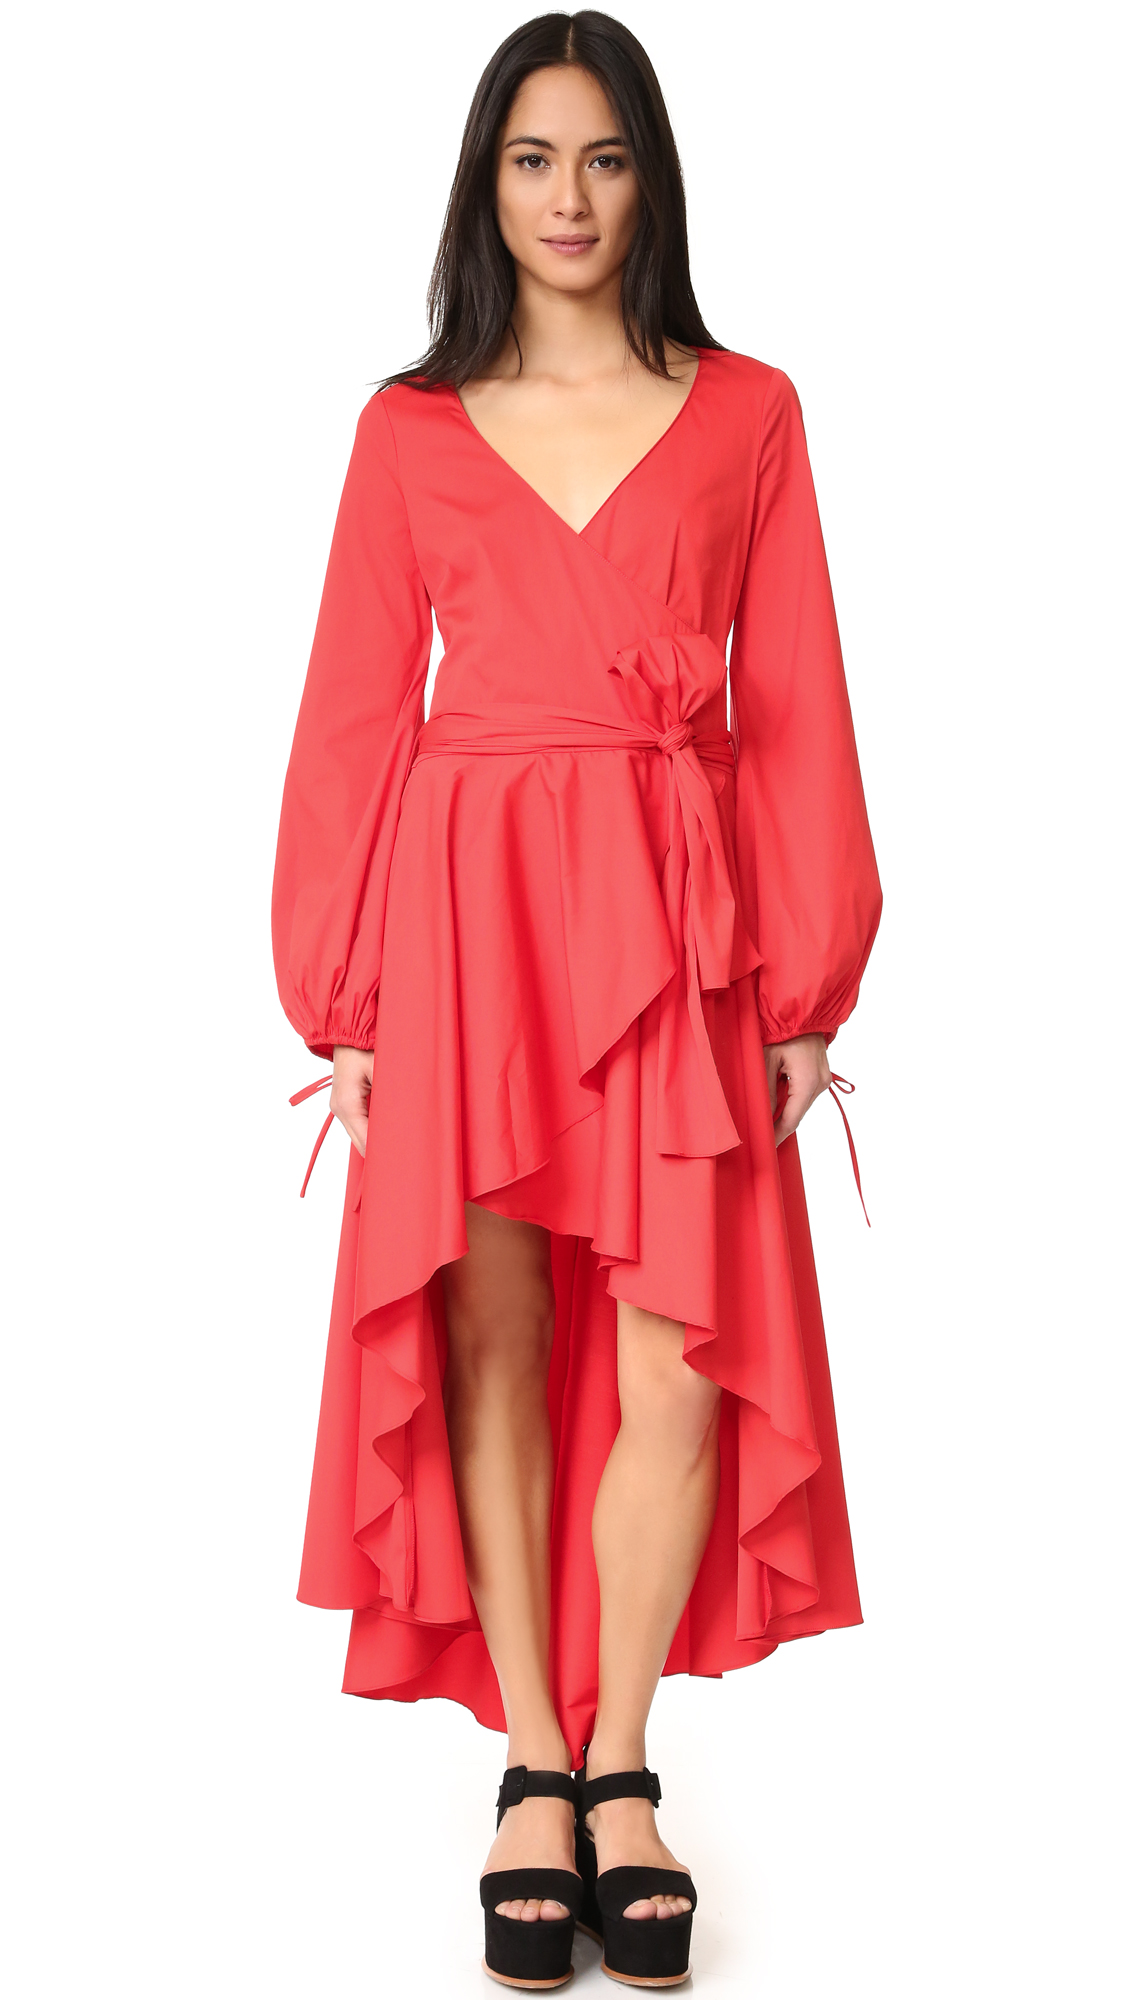 Caroline Constas Lena Dress - Red